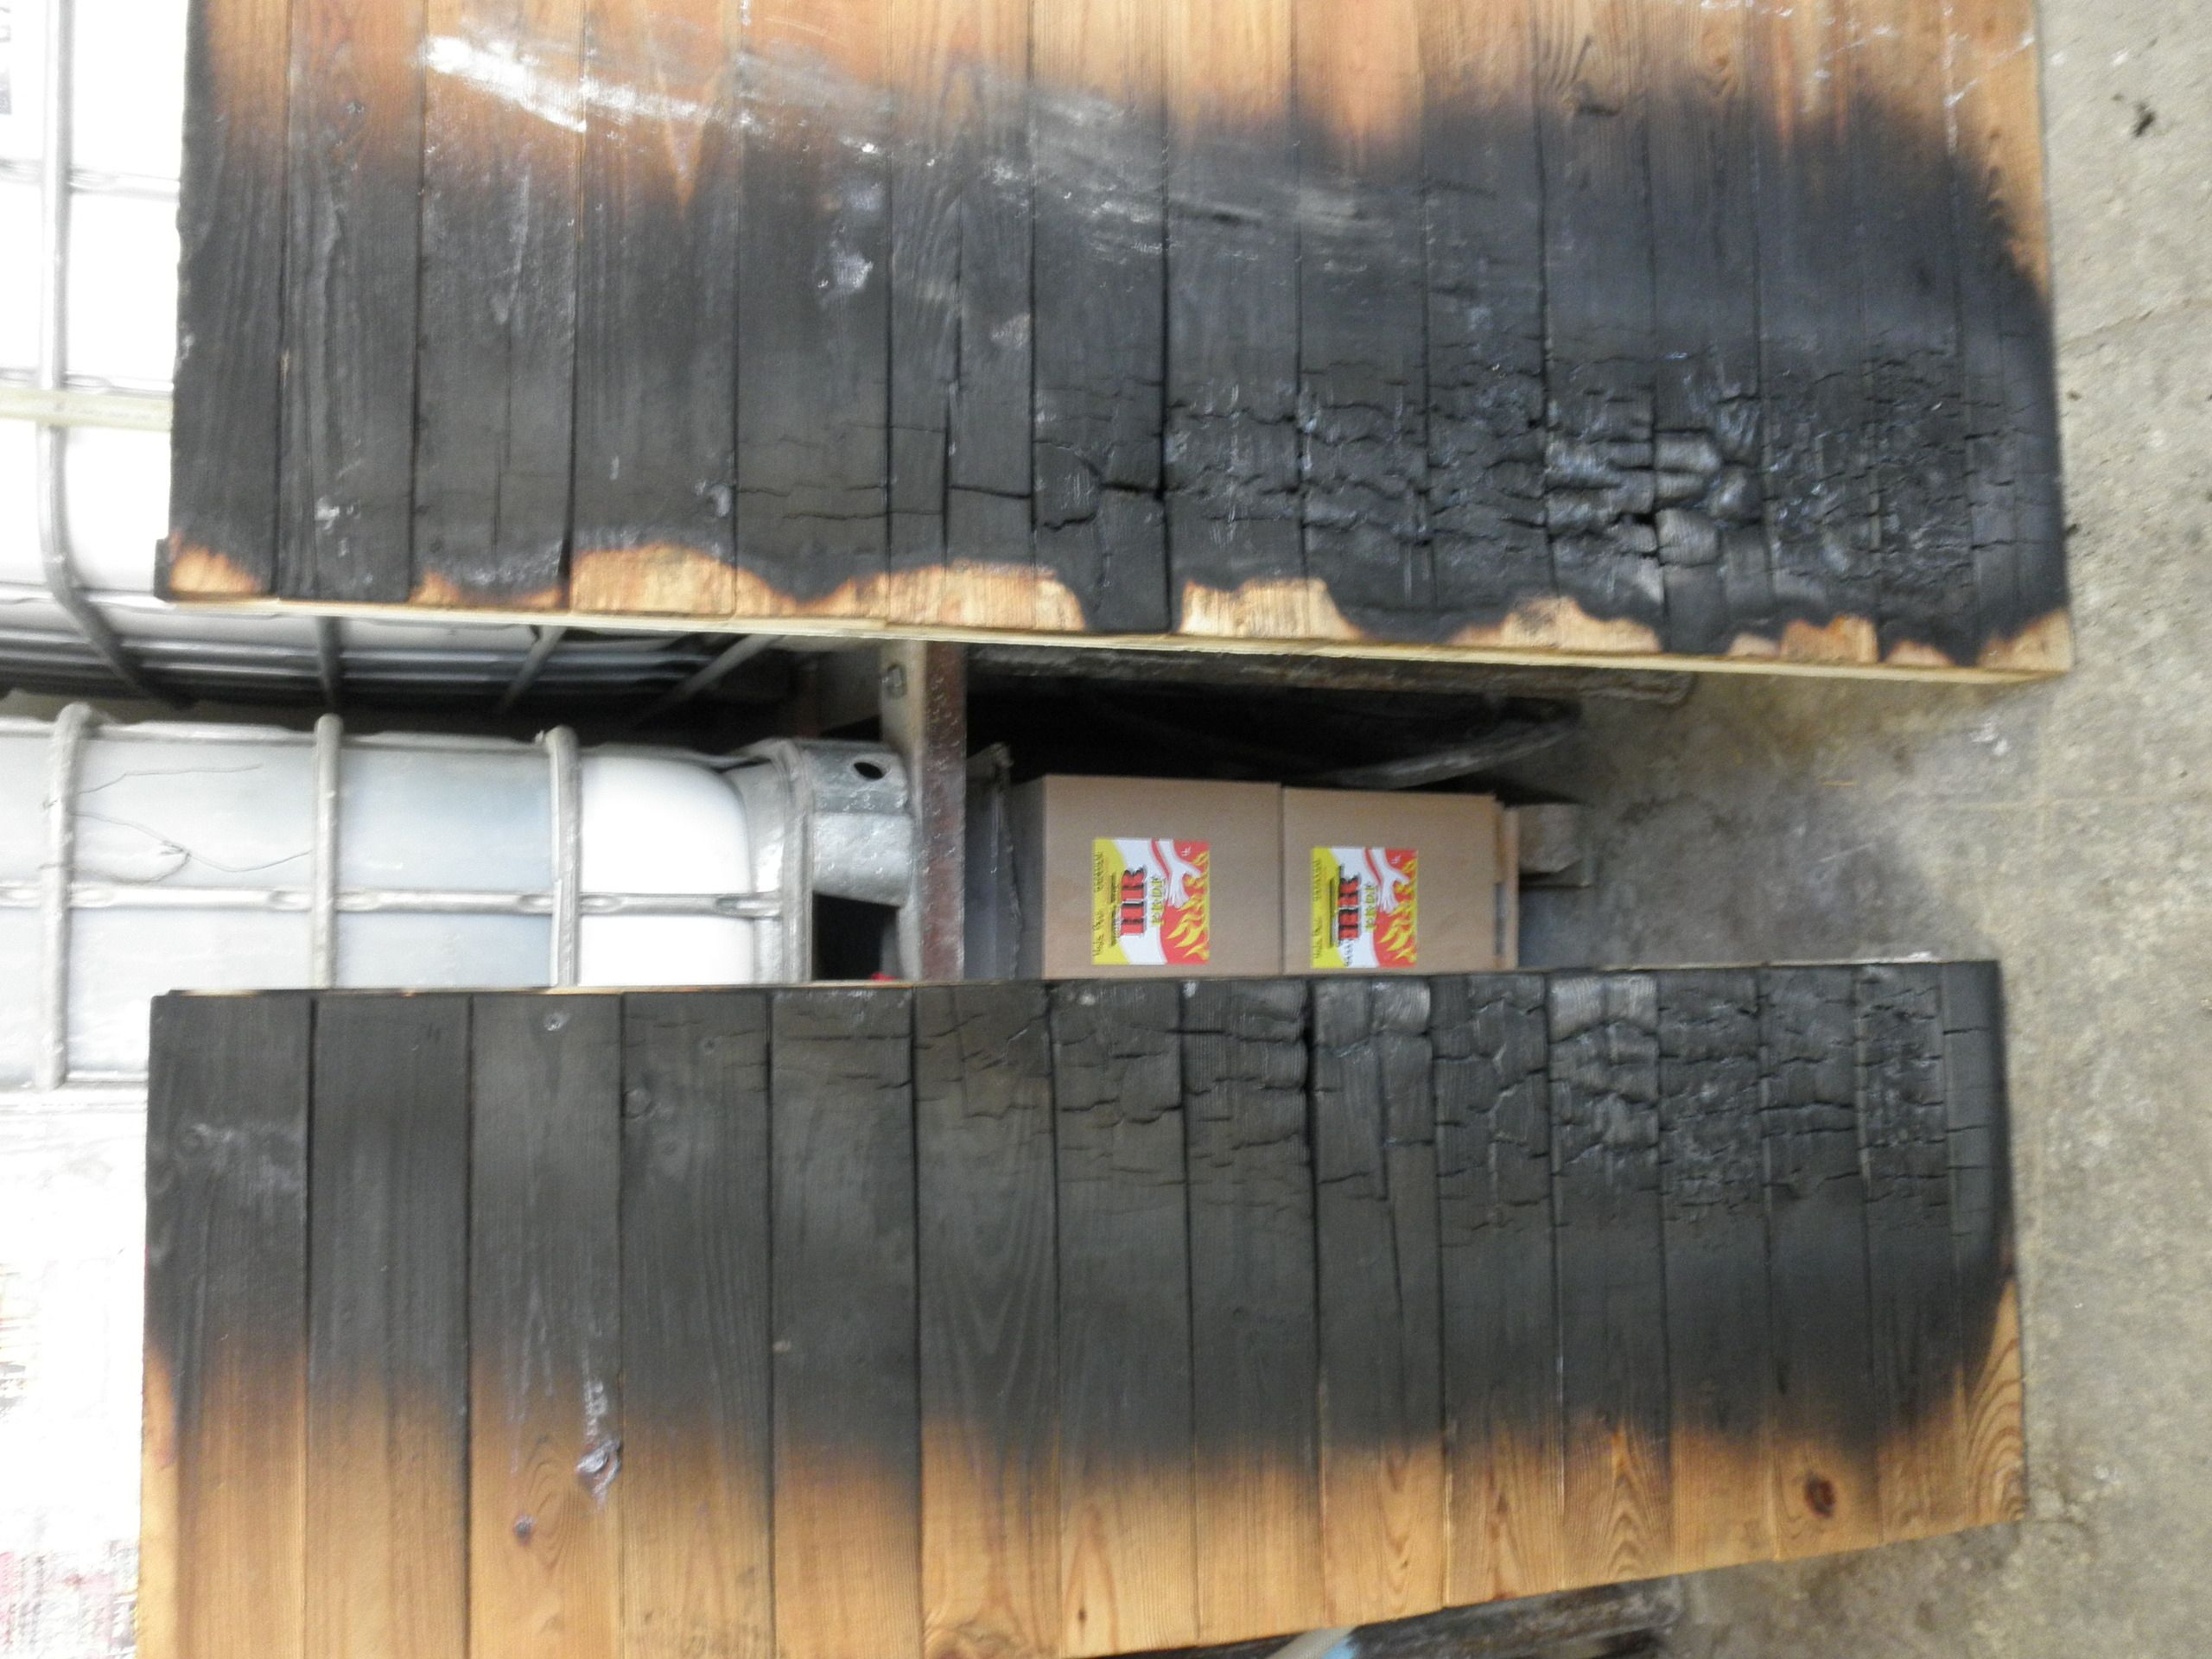 Fire Retardant For Complete Wood Protection Holz Prof Ou Wood Protection Fire Retardant Fire